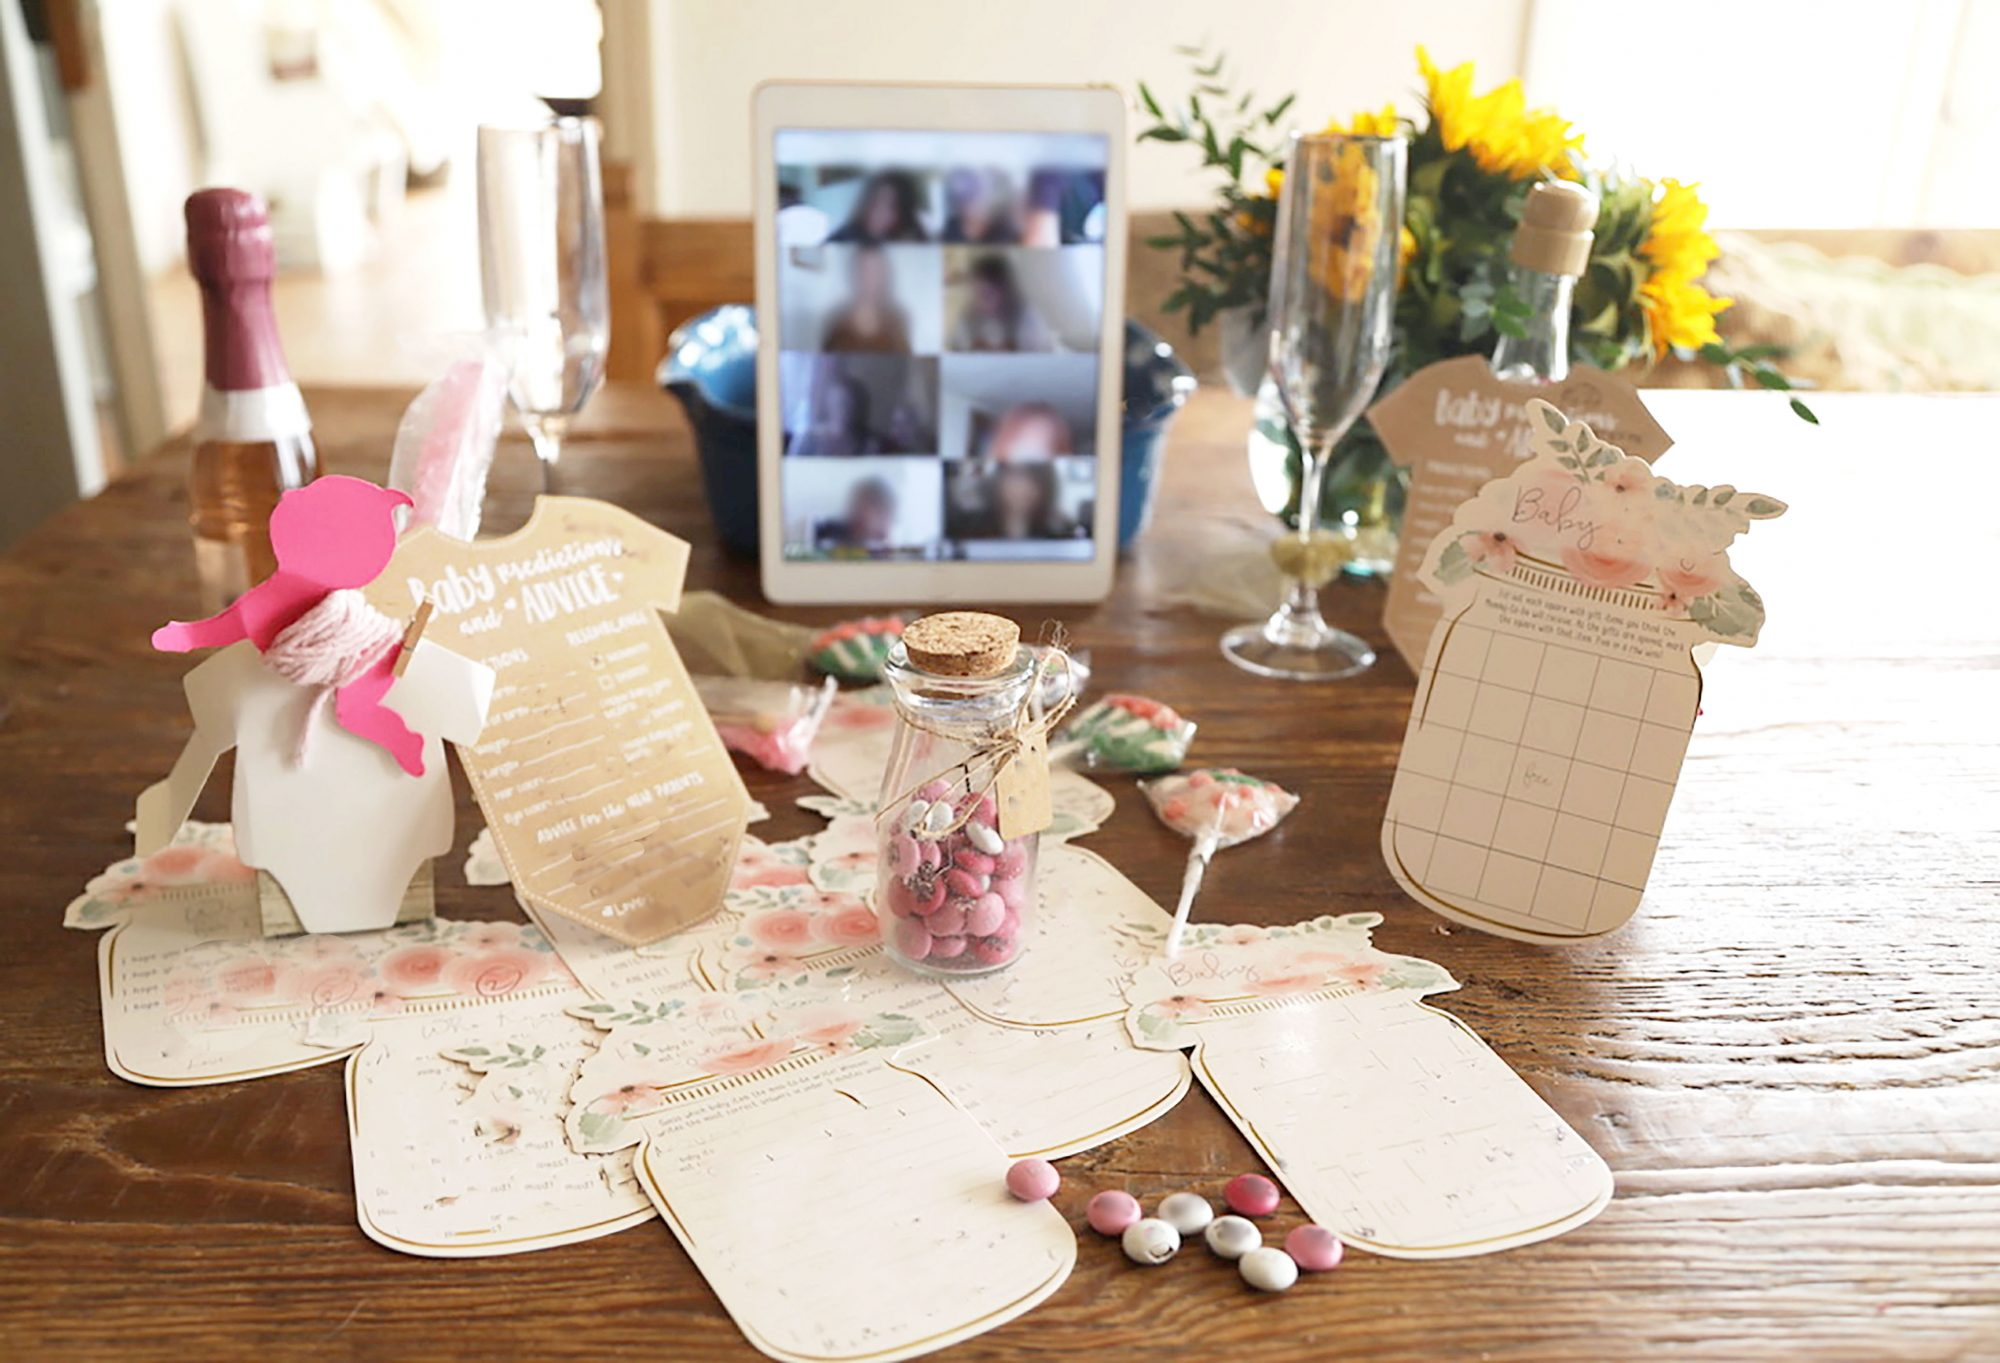 virtual baby shower setup on dining table